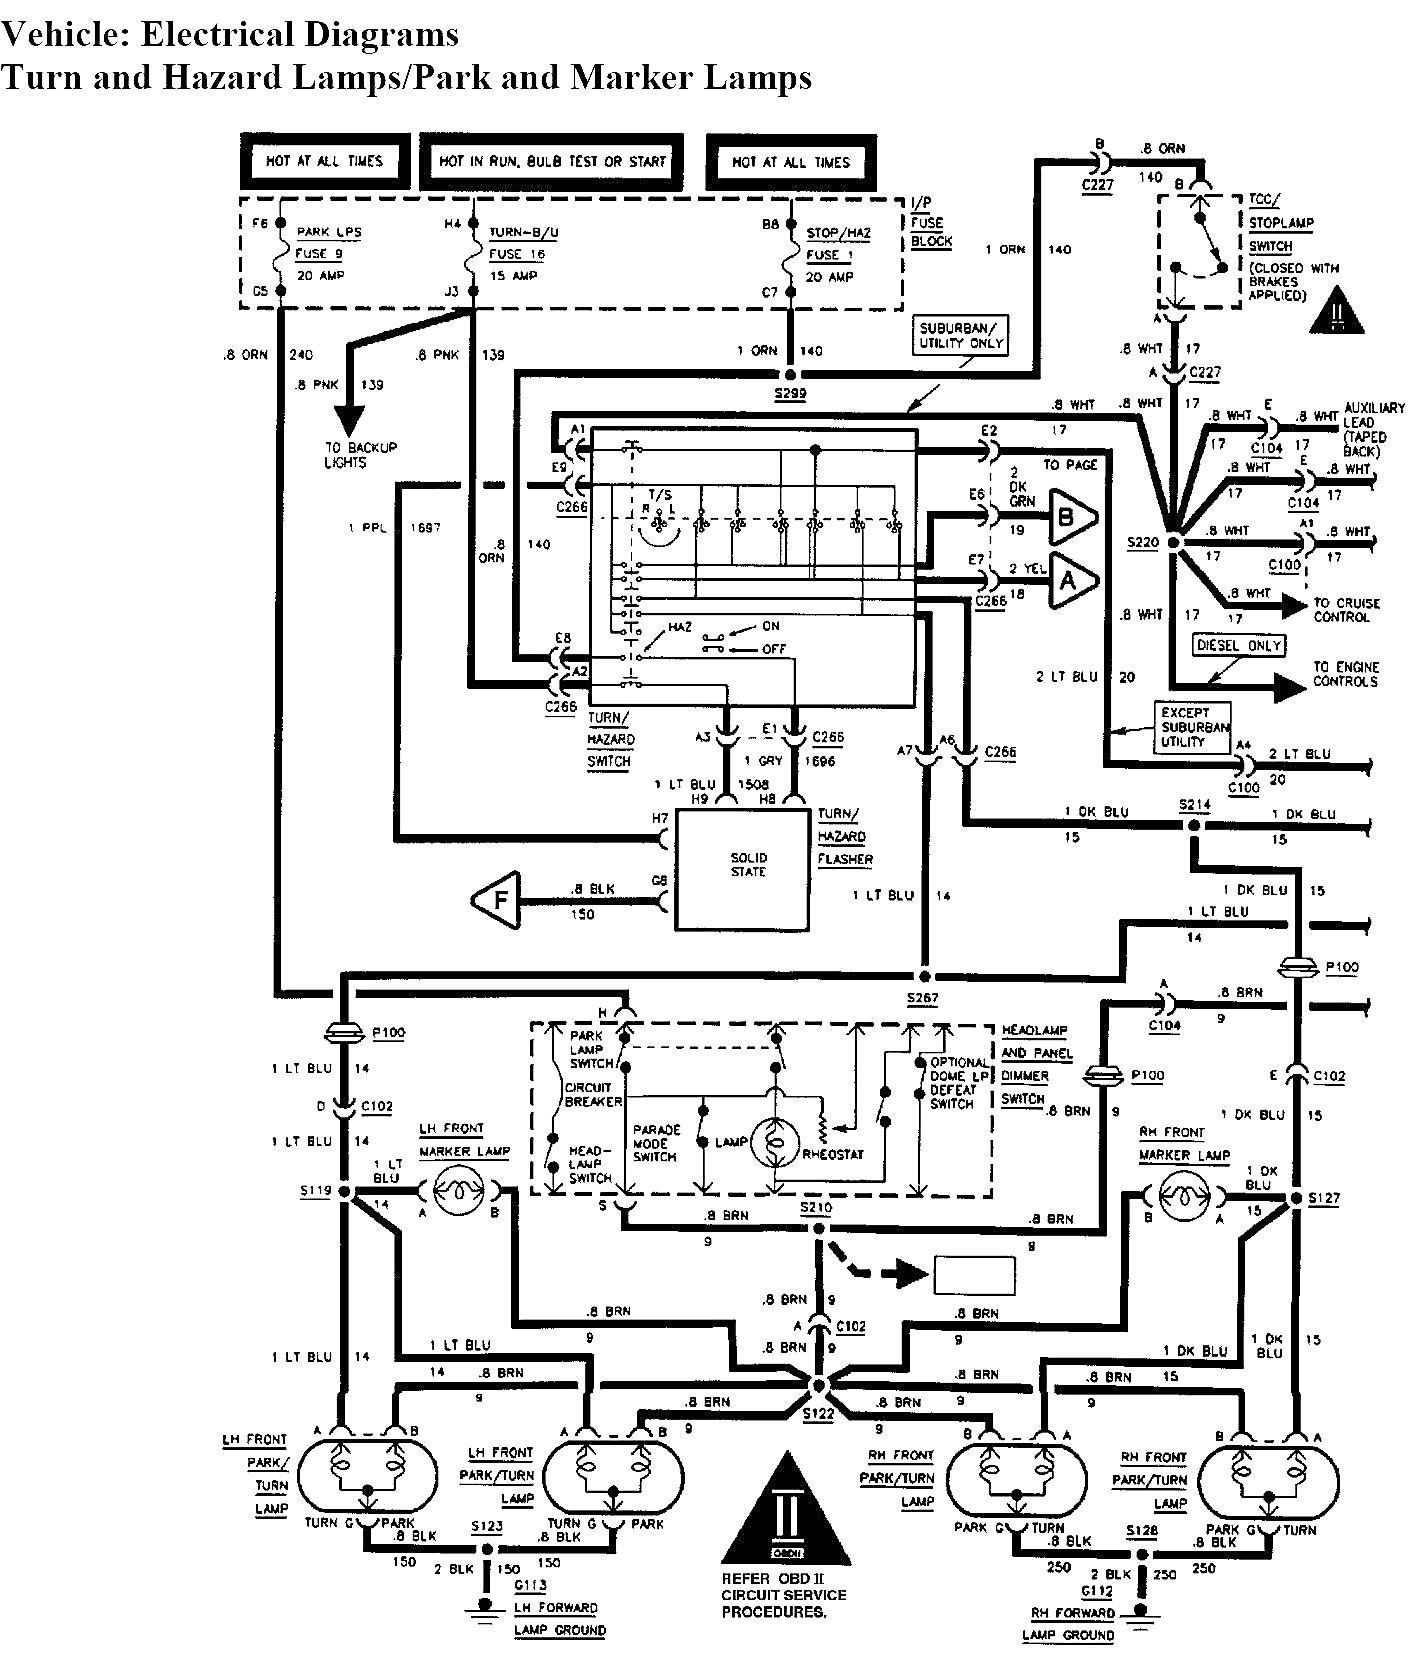 water pump wiring diagram australian car trailer windshield 2000 gmc yukon